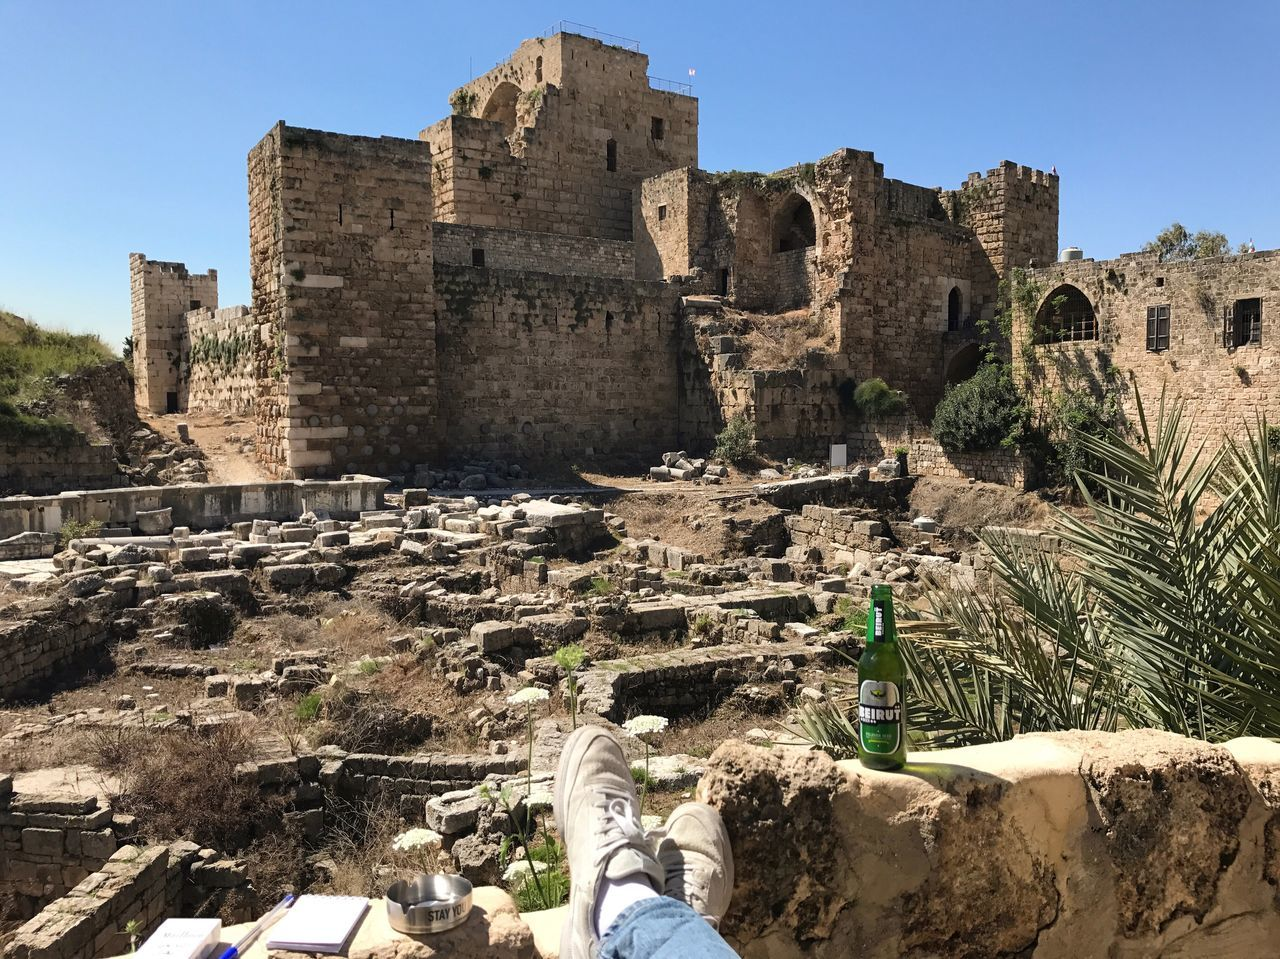 It's good to be a local Byblos Castle Crusaders Landscape View Archaeology Architecture History Ruins Lebanon Tourism Chilling Serenity Nofilter